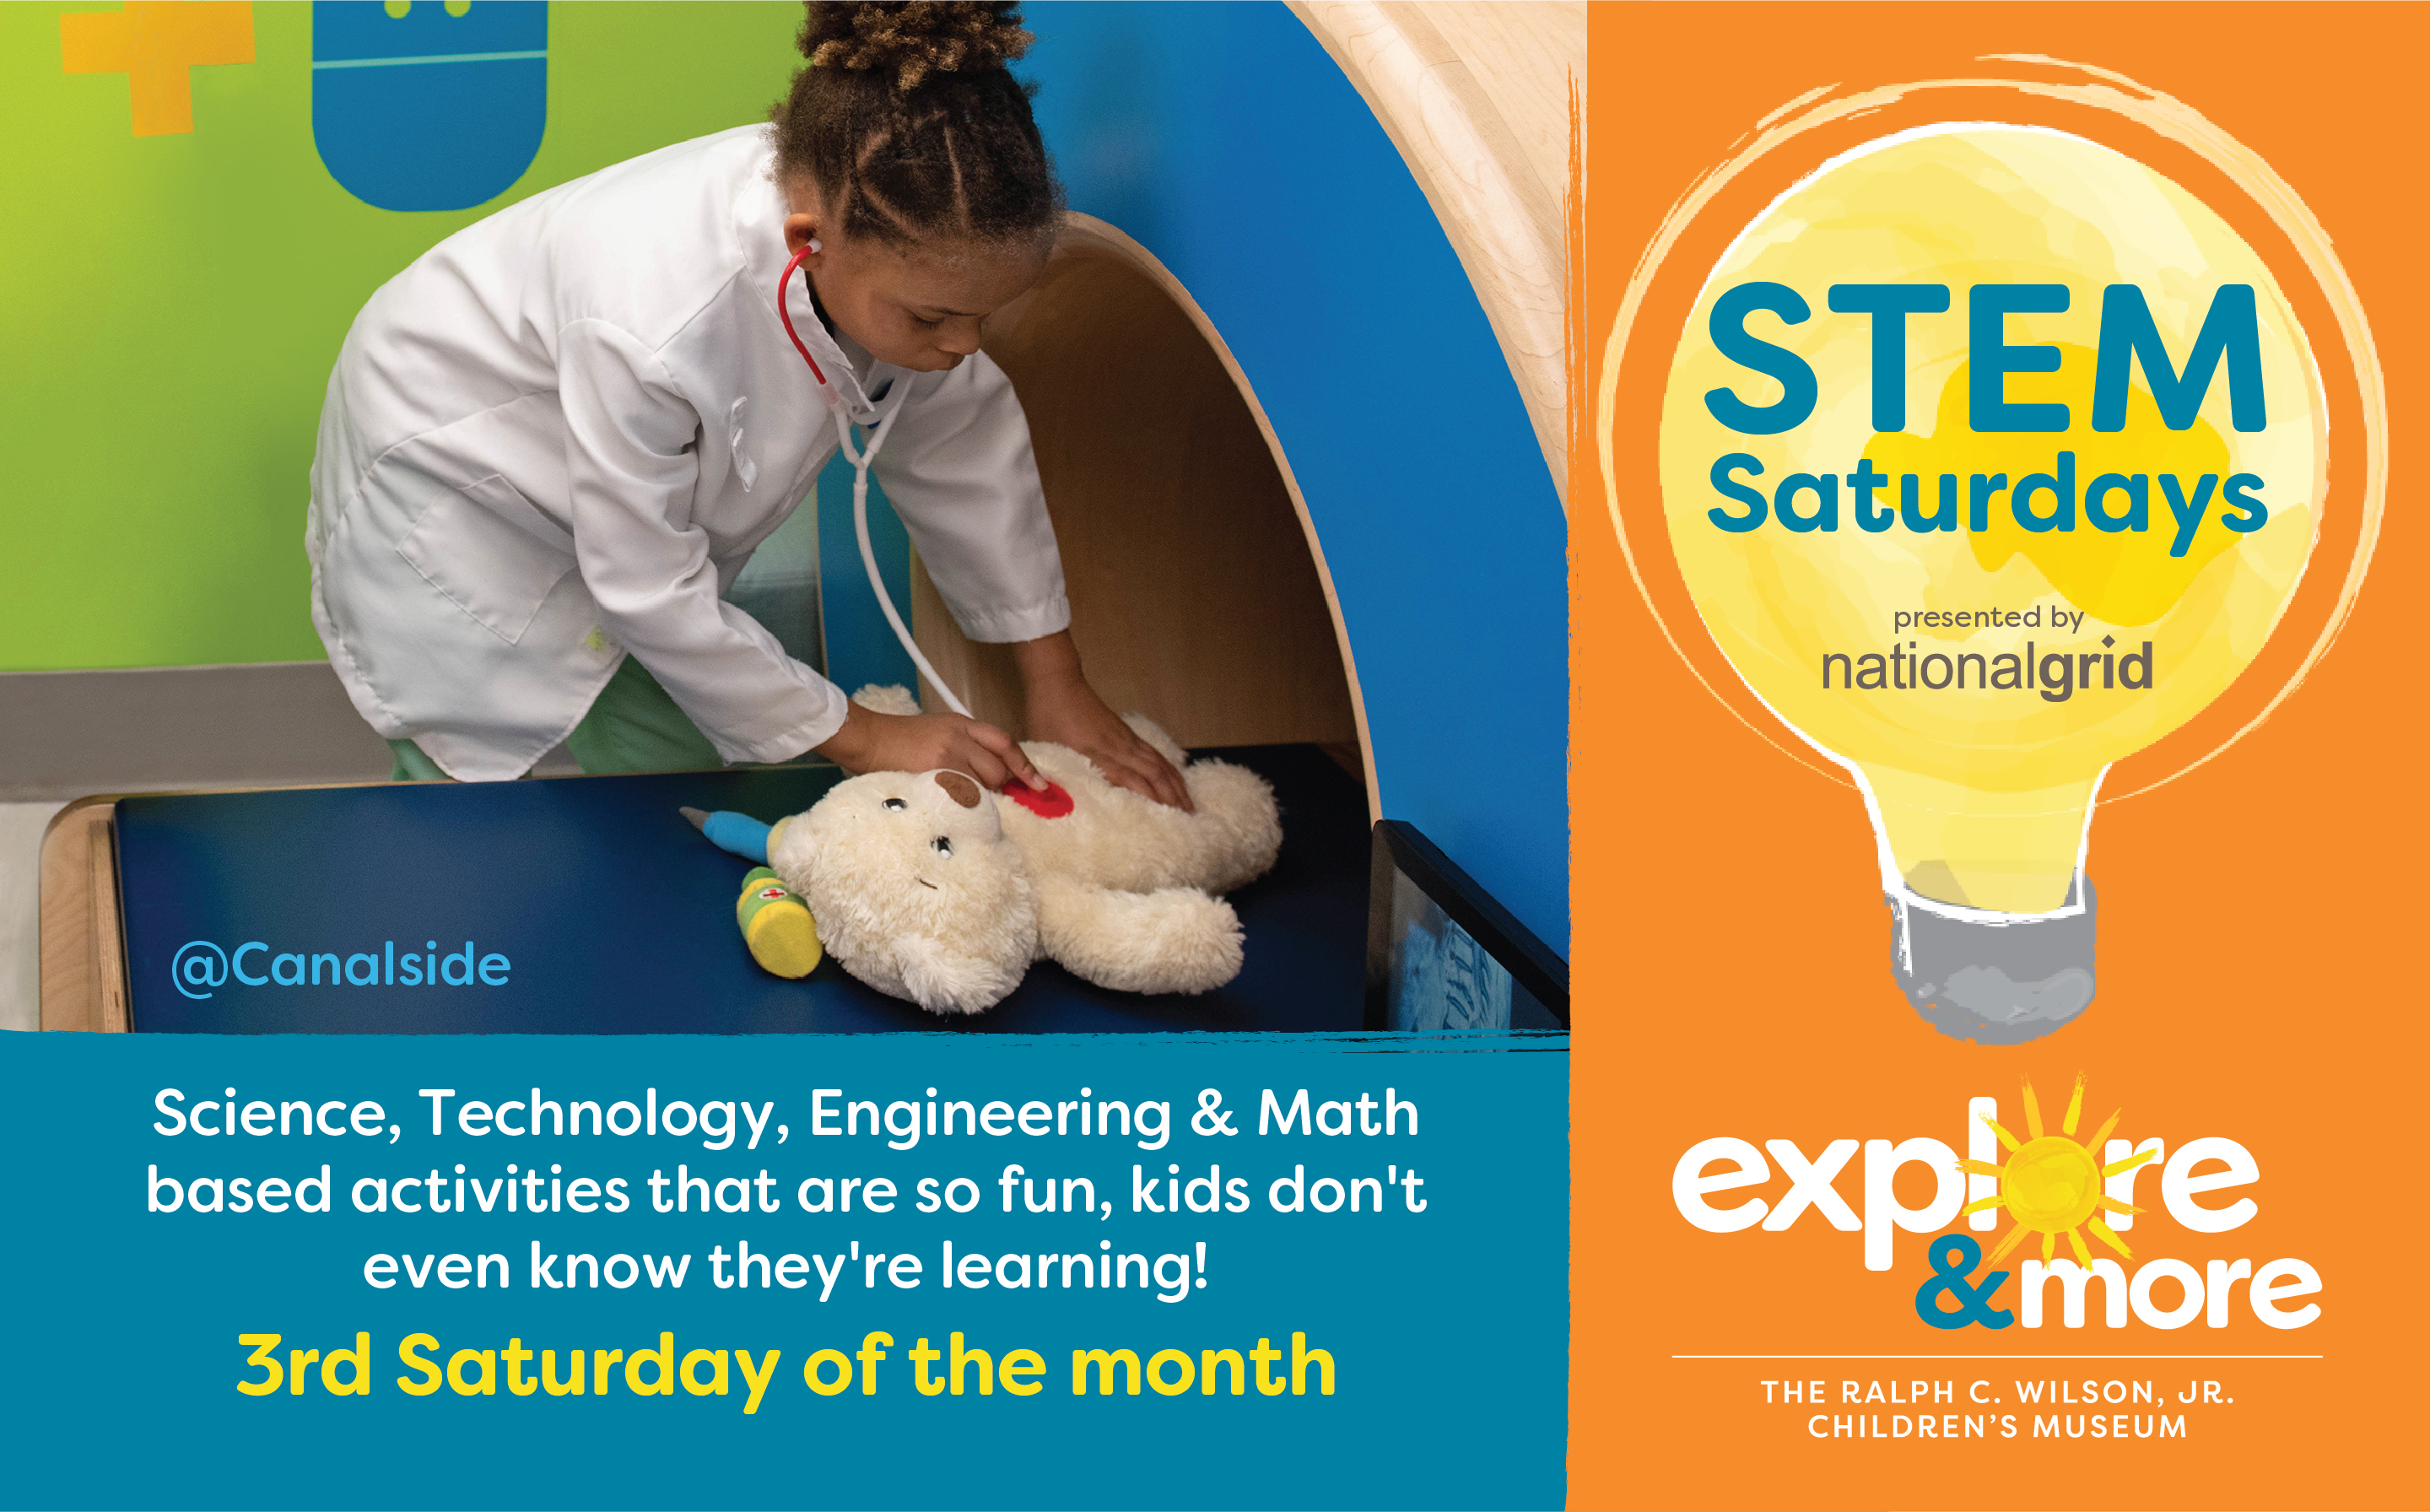 STEM Saturday Explore & More Canalside